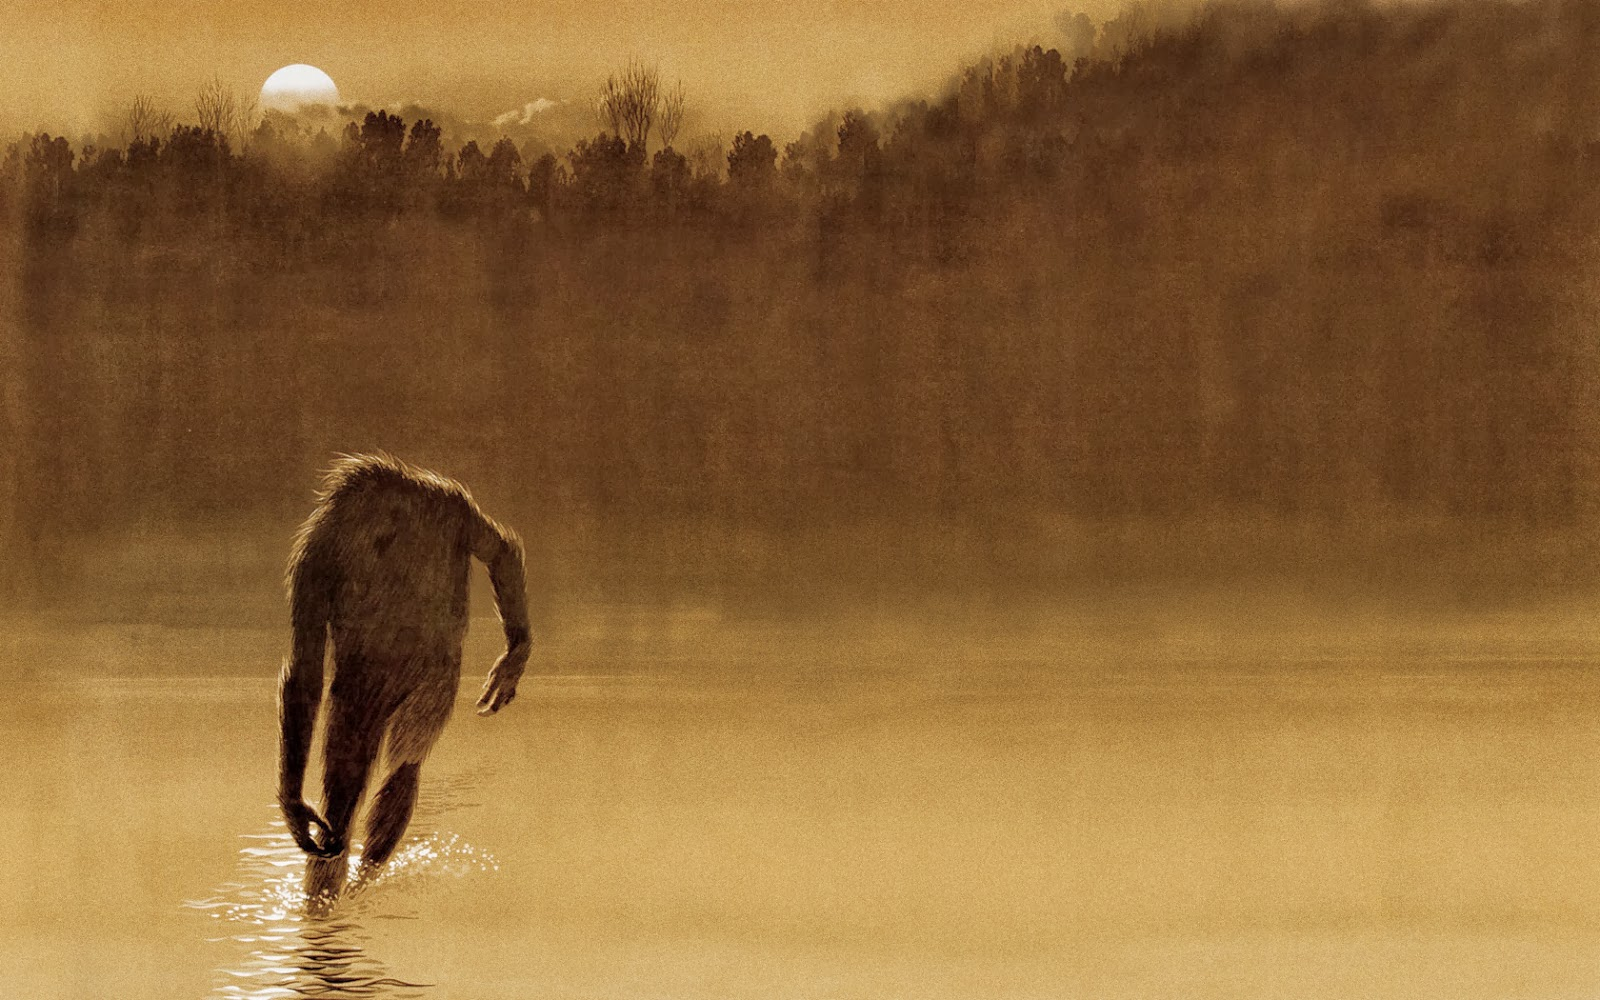 Exclusive Unseen Footage: The Legend of Boggy Creek (1972).